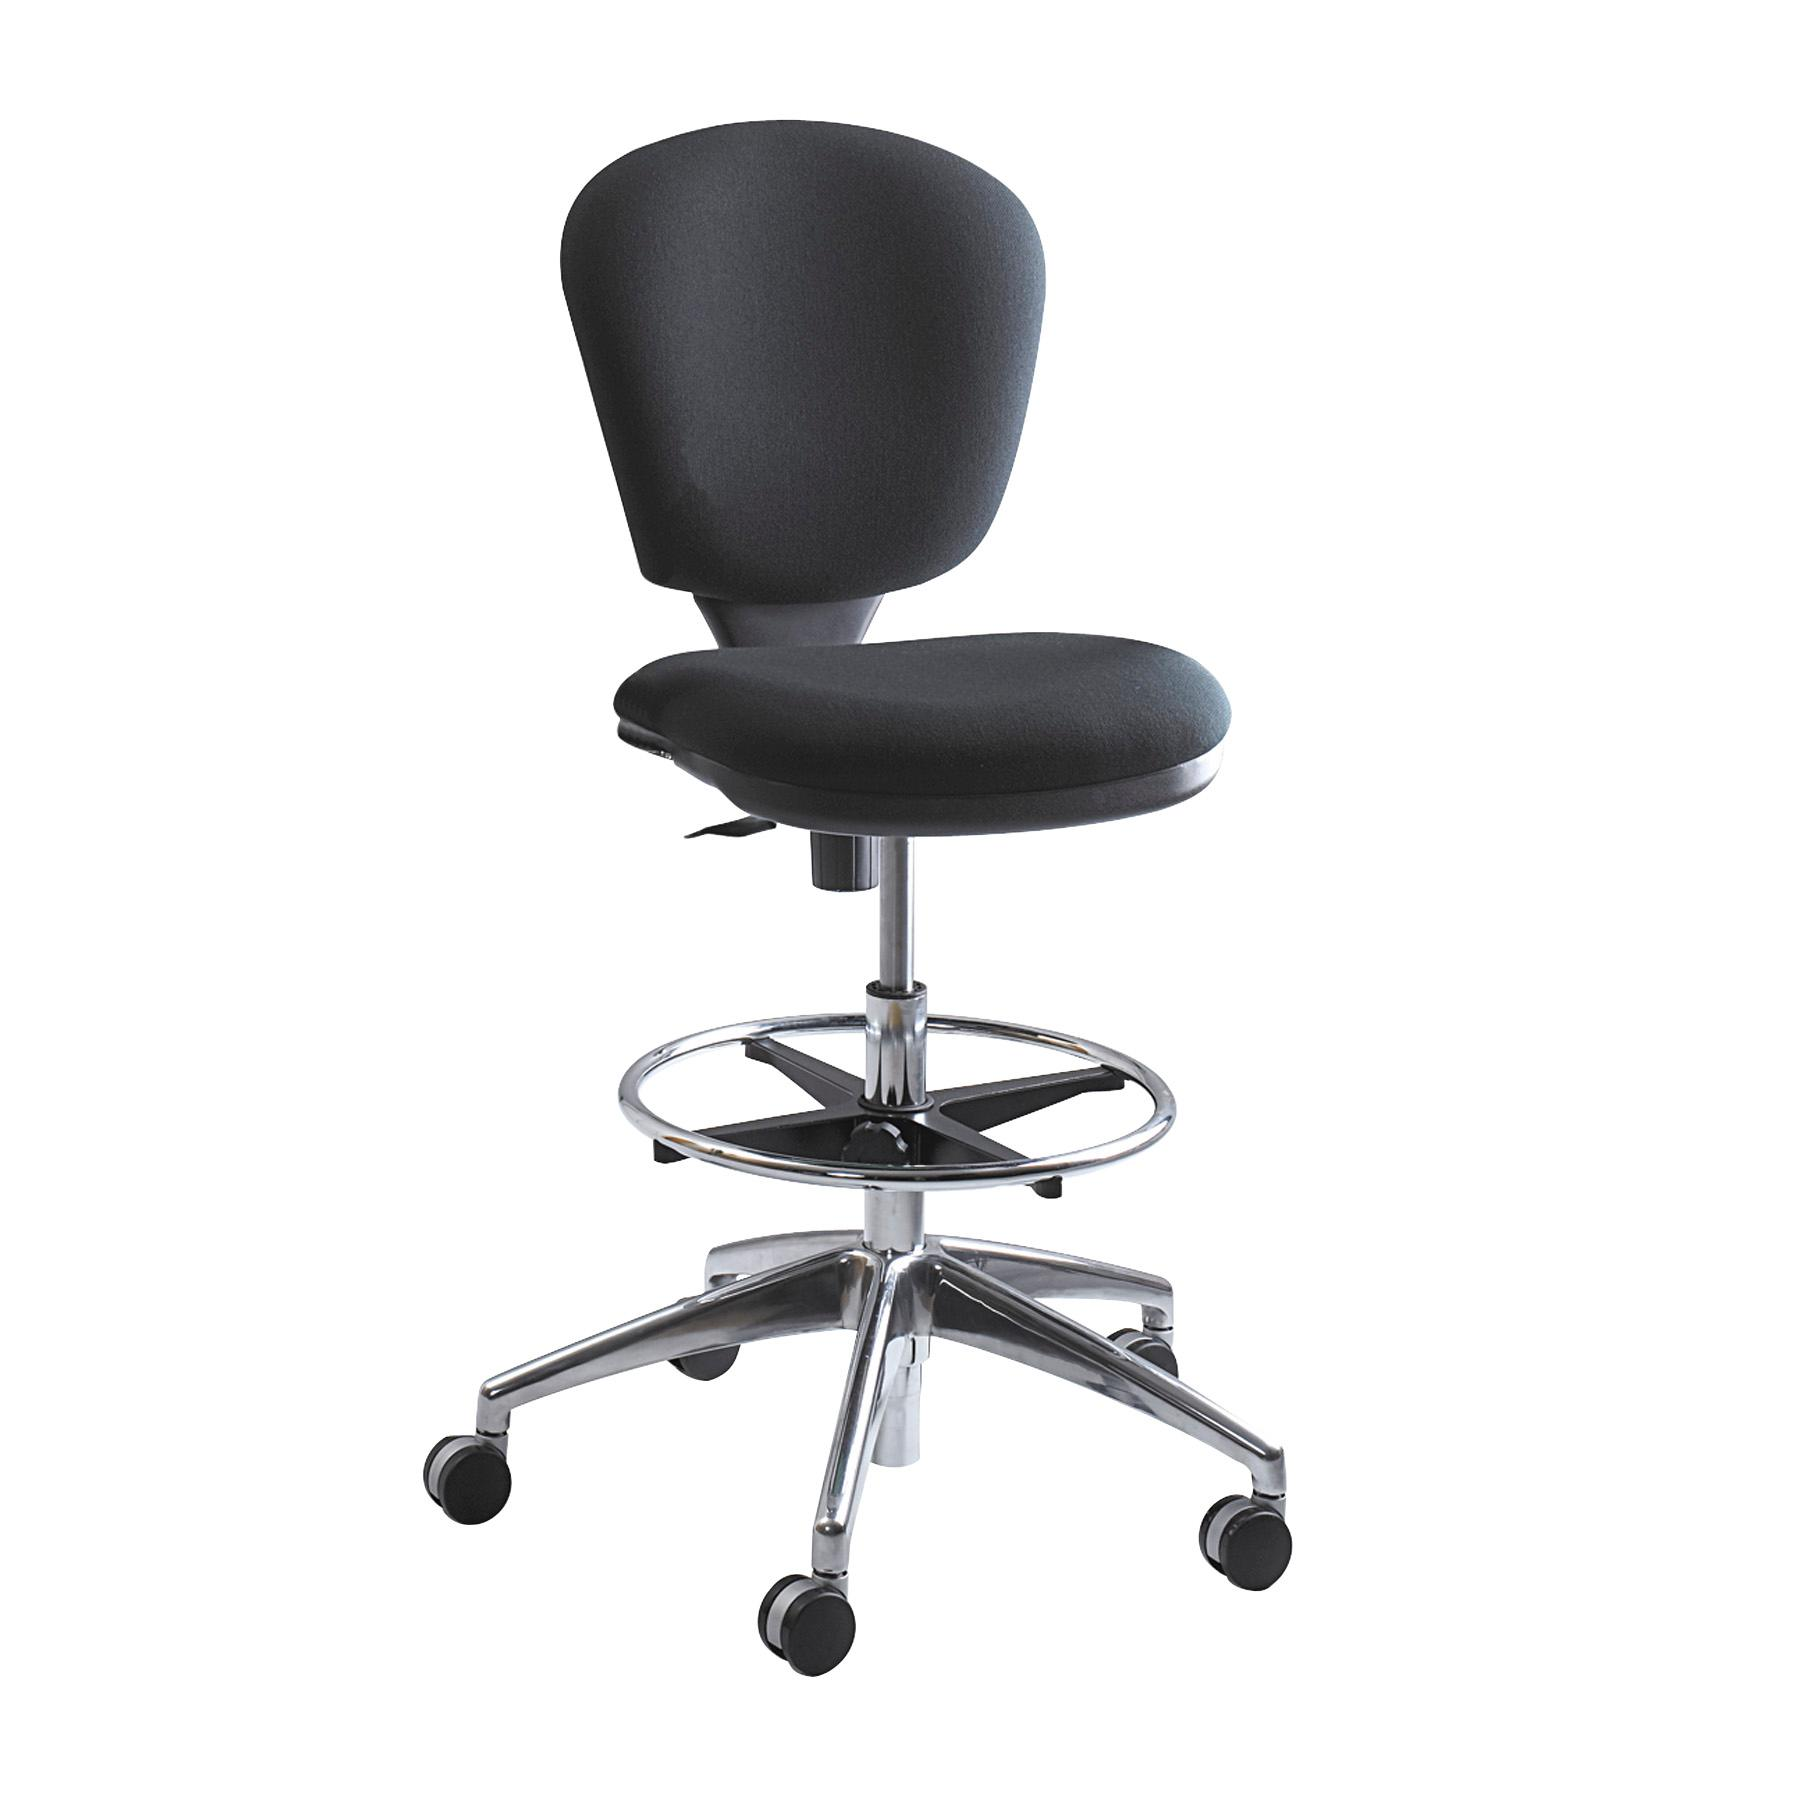 Chair seat stool extended height warehouse seat office chair  sc 1 st  Amazon.com : high stool with back support - islam-shia.org